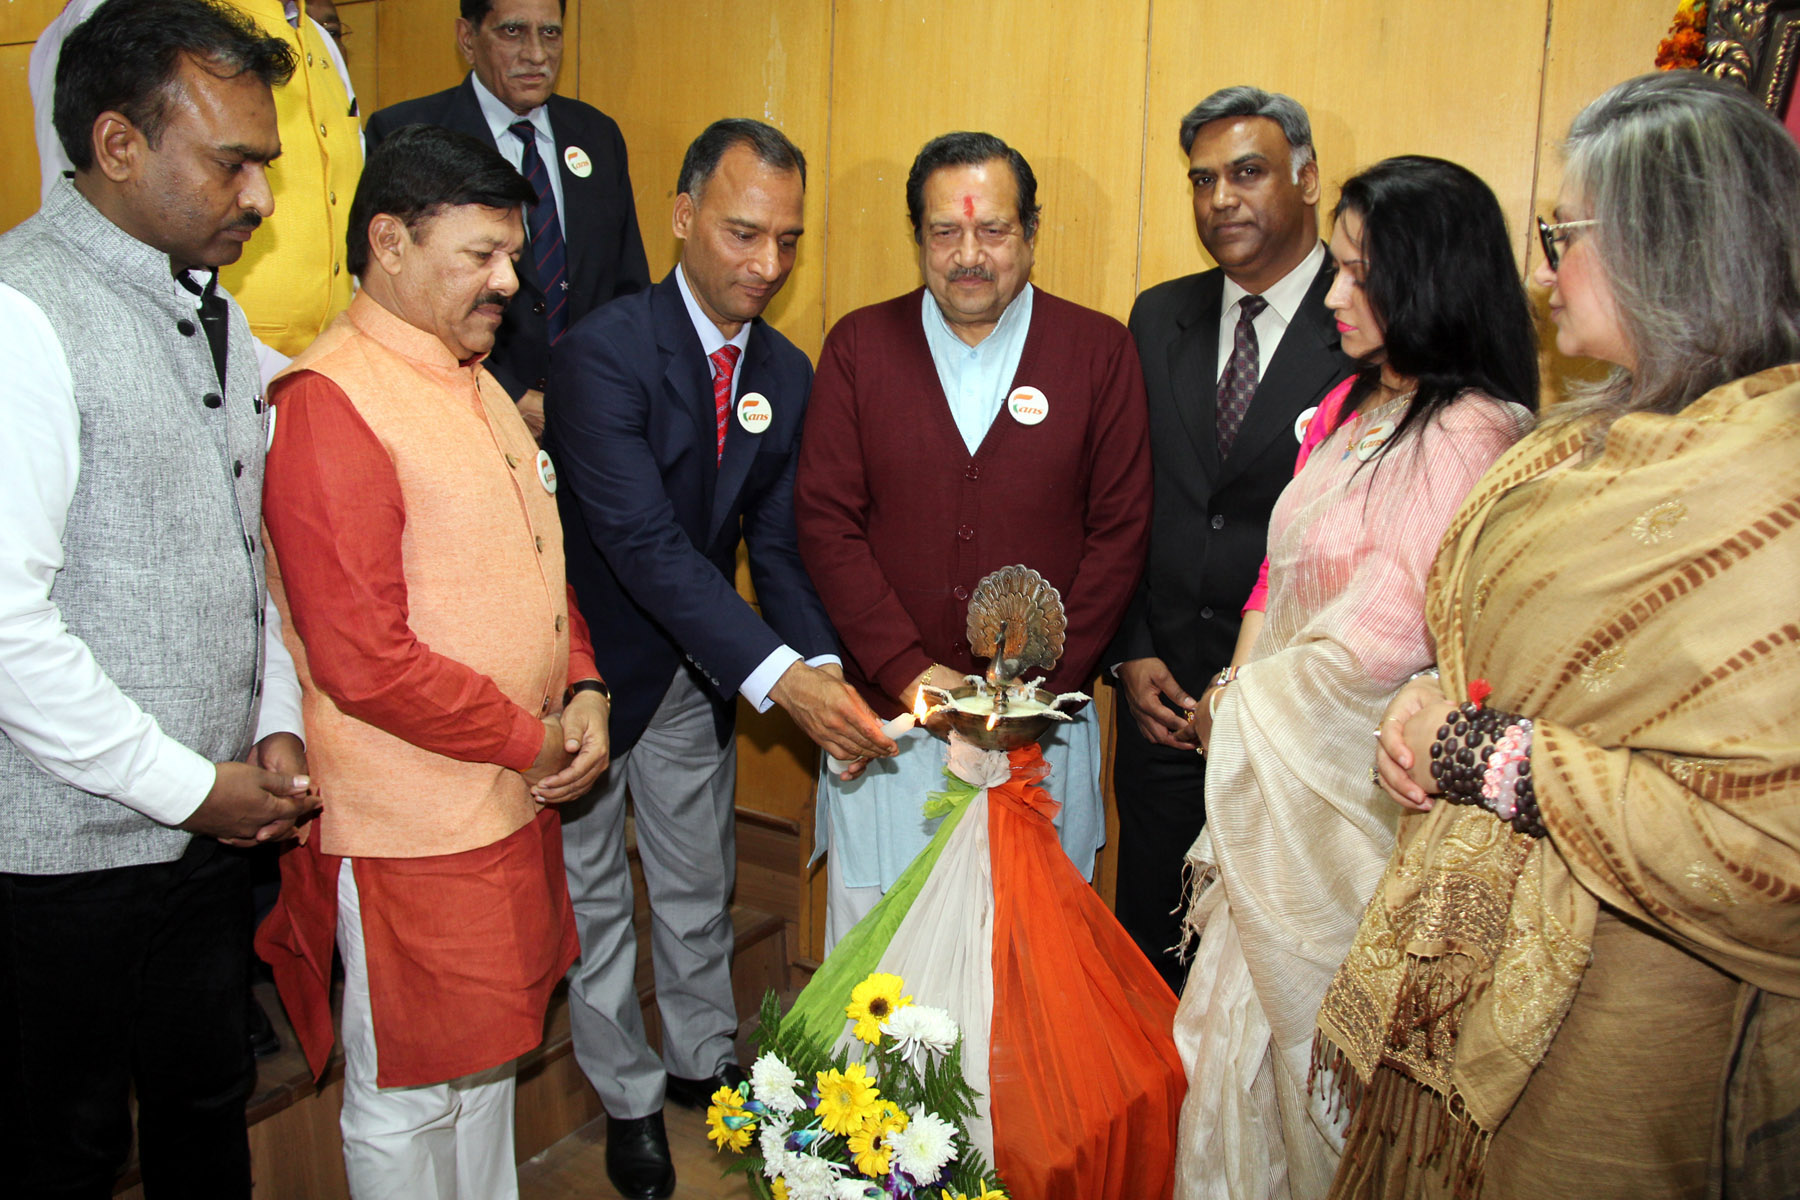 The Adviser to the Administrator, UT, Chandigarh, Mr. Vijay Dev lighting the traditional lamp as Guest of Honour at the inauguration of Proxy War Through Drugs Seminar in Golden Jubilee Hall Panjab University Chandigarh on Wednesday, February 10, 2016.